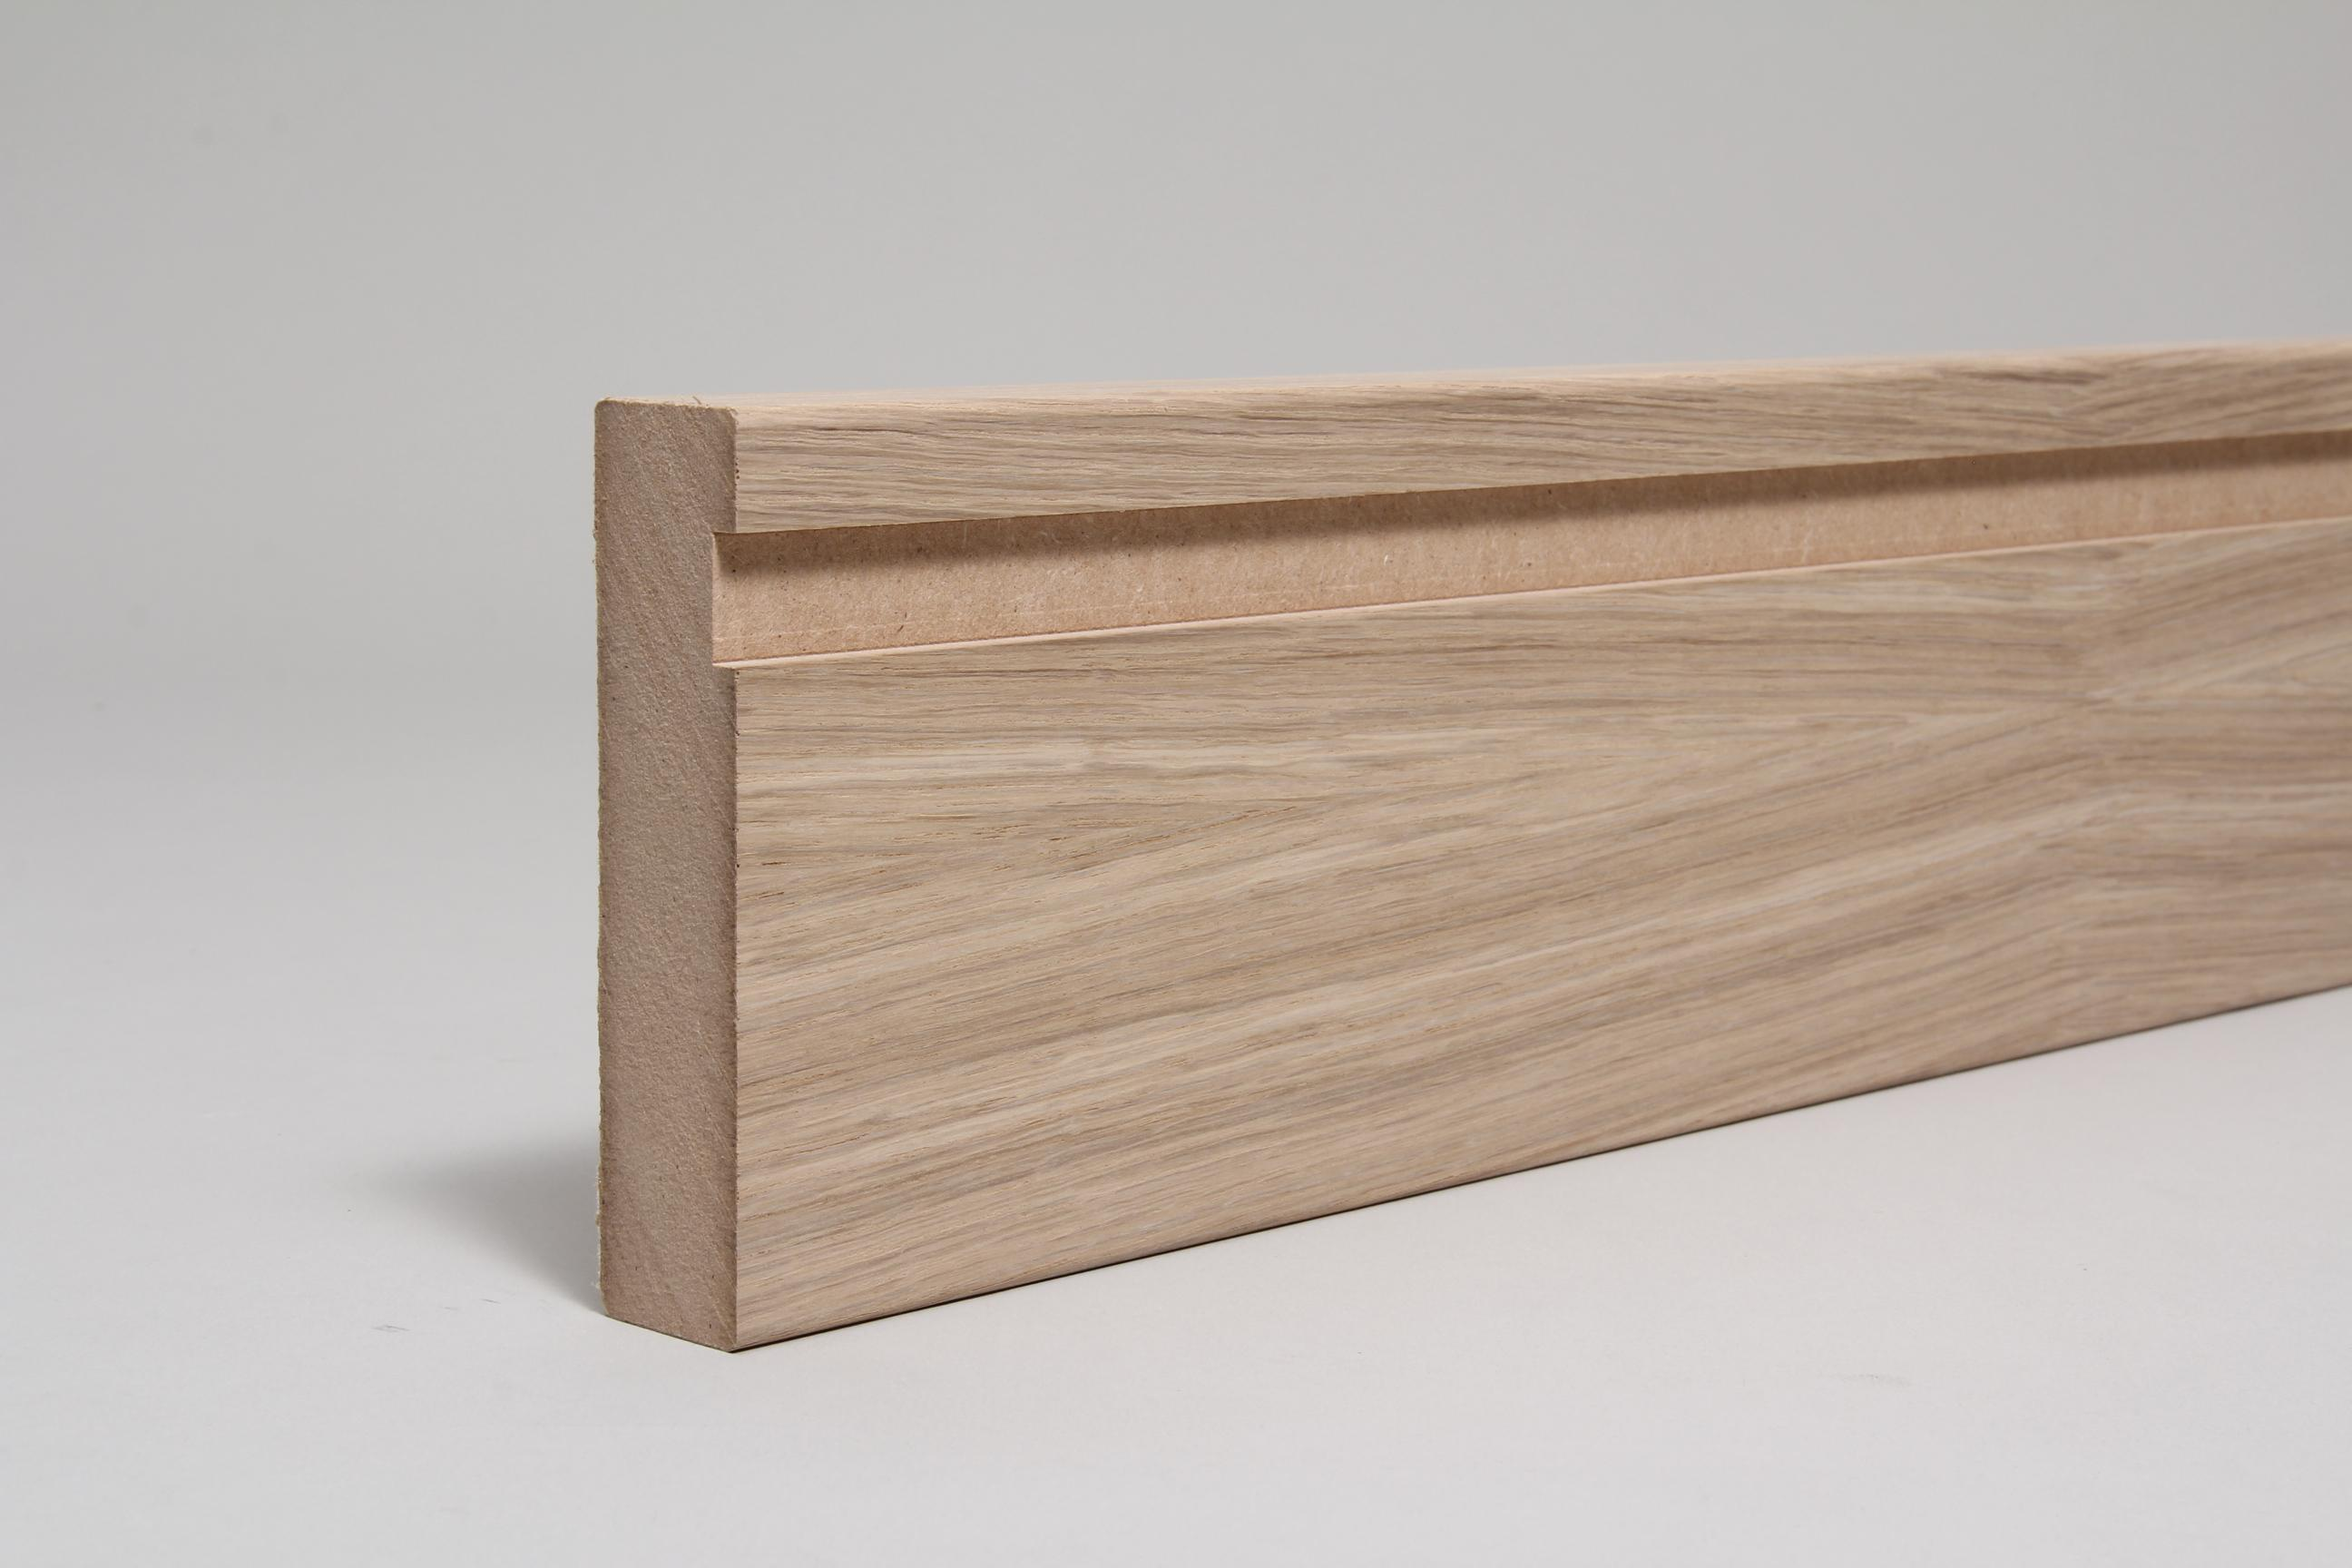 Fire lining set 25mm x 100mm veneered american white oak for 100mm door stop